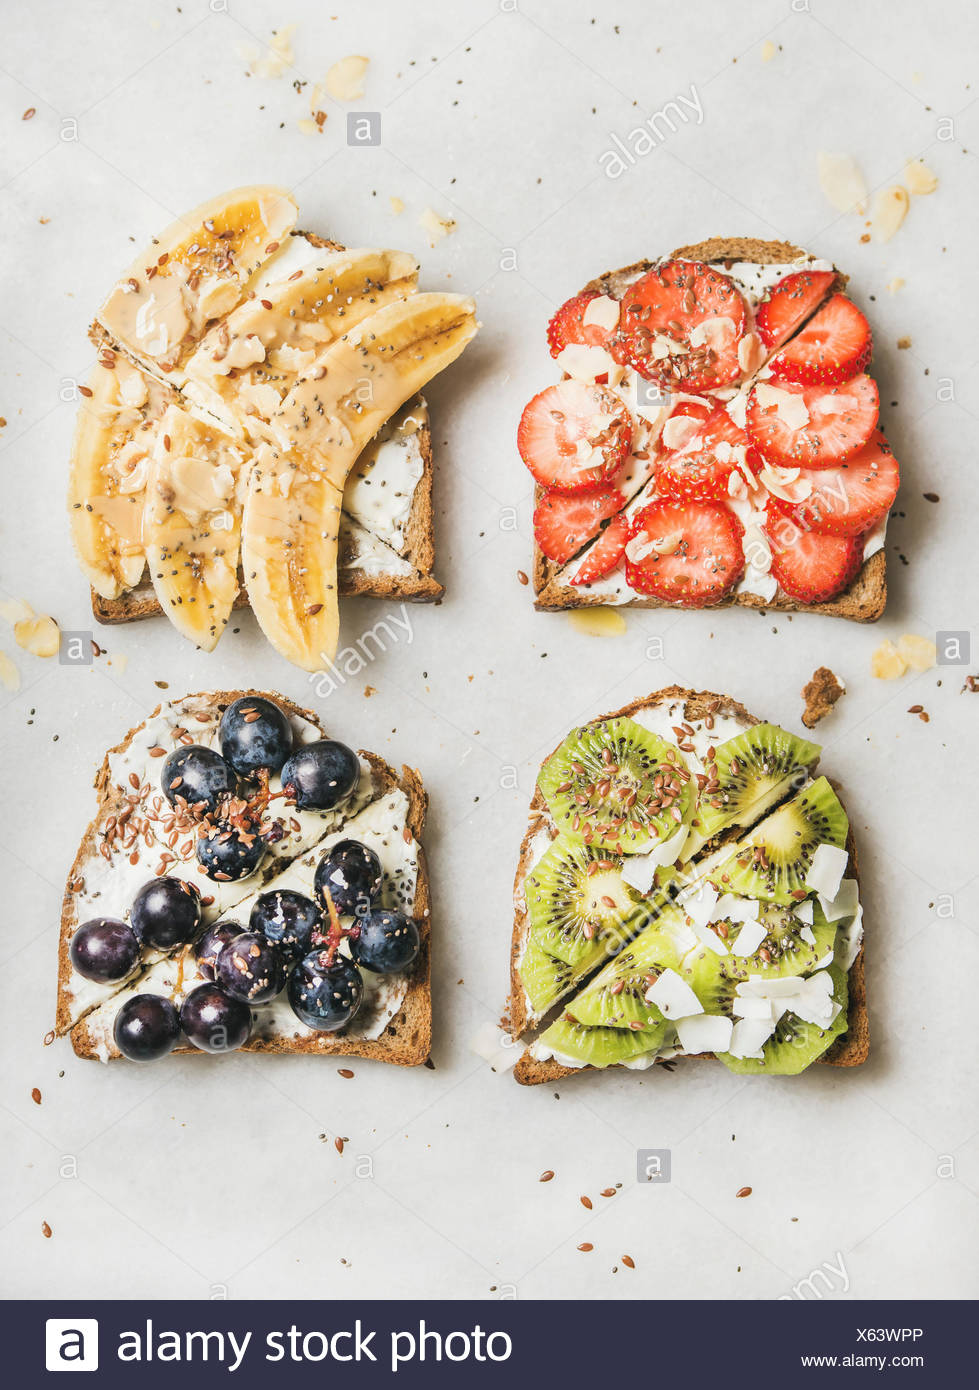 Healthy breakfast toasts. Wholegrain bread slices with cream cheese, various fruit, seeds and nuts. Top view, grey marble background Stock Photo